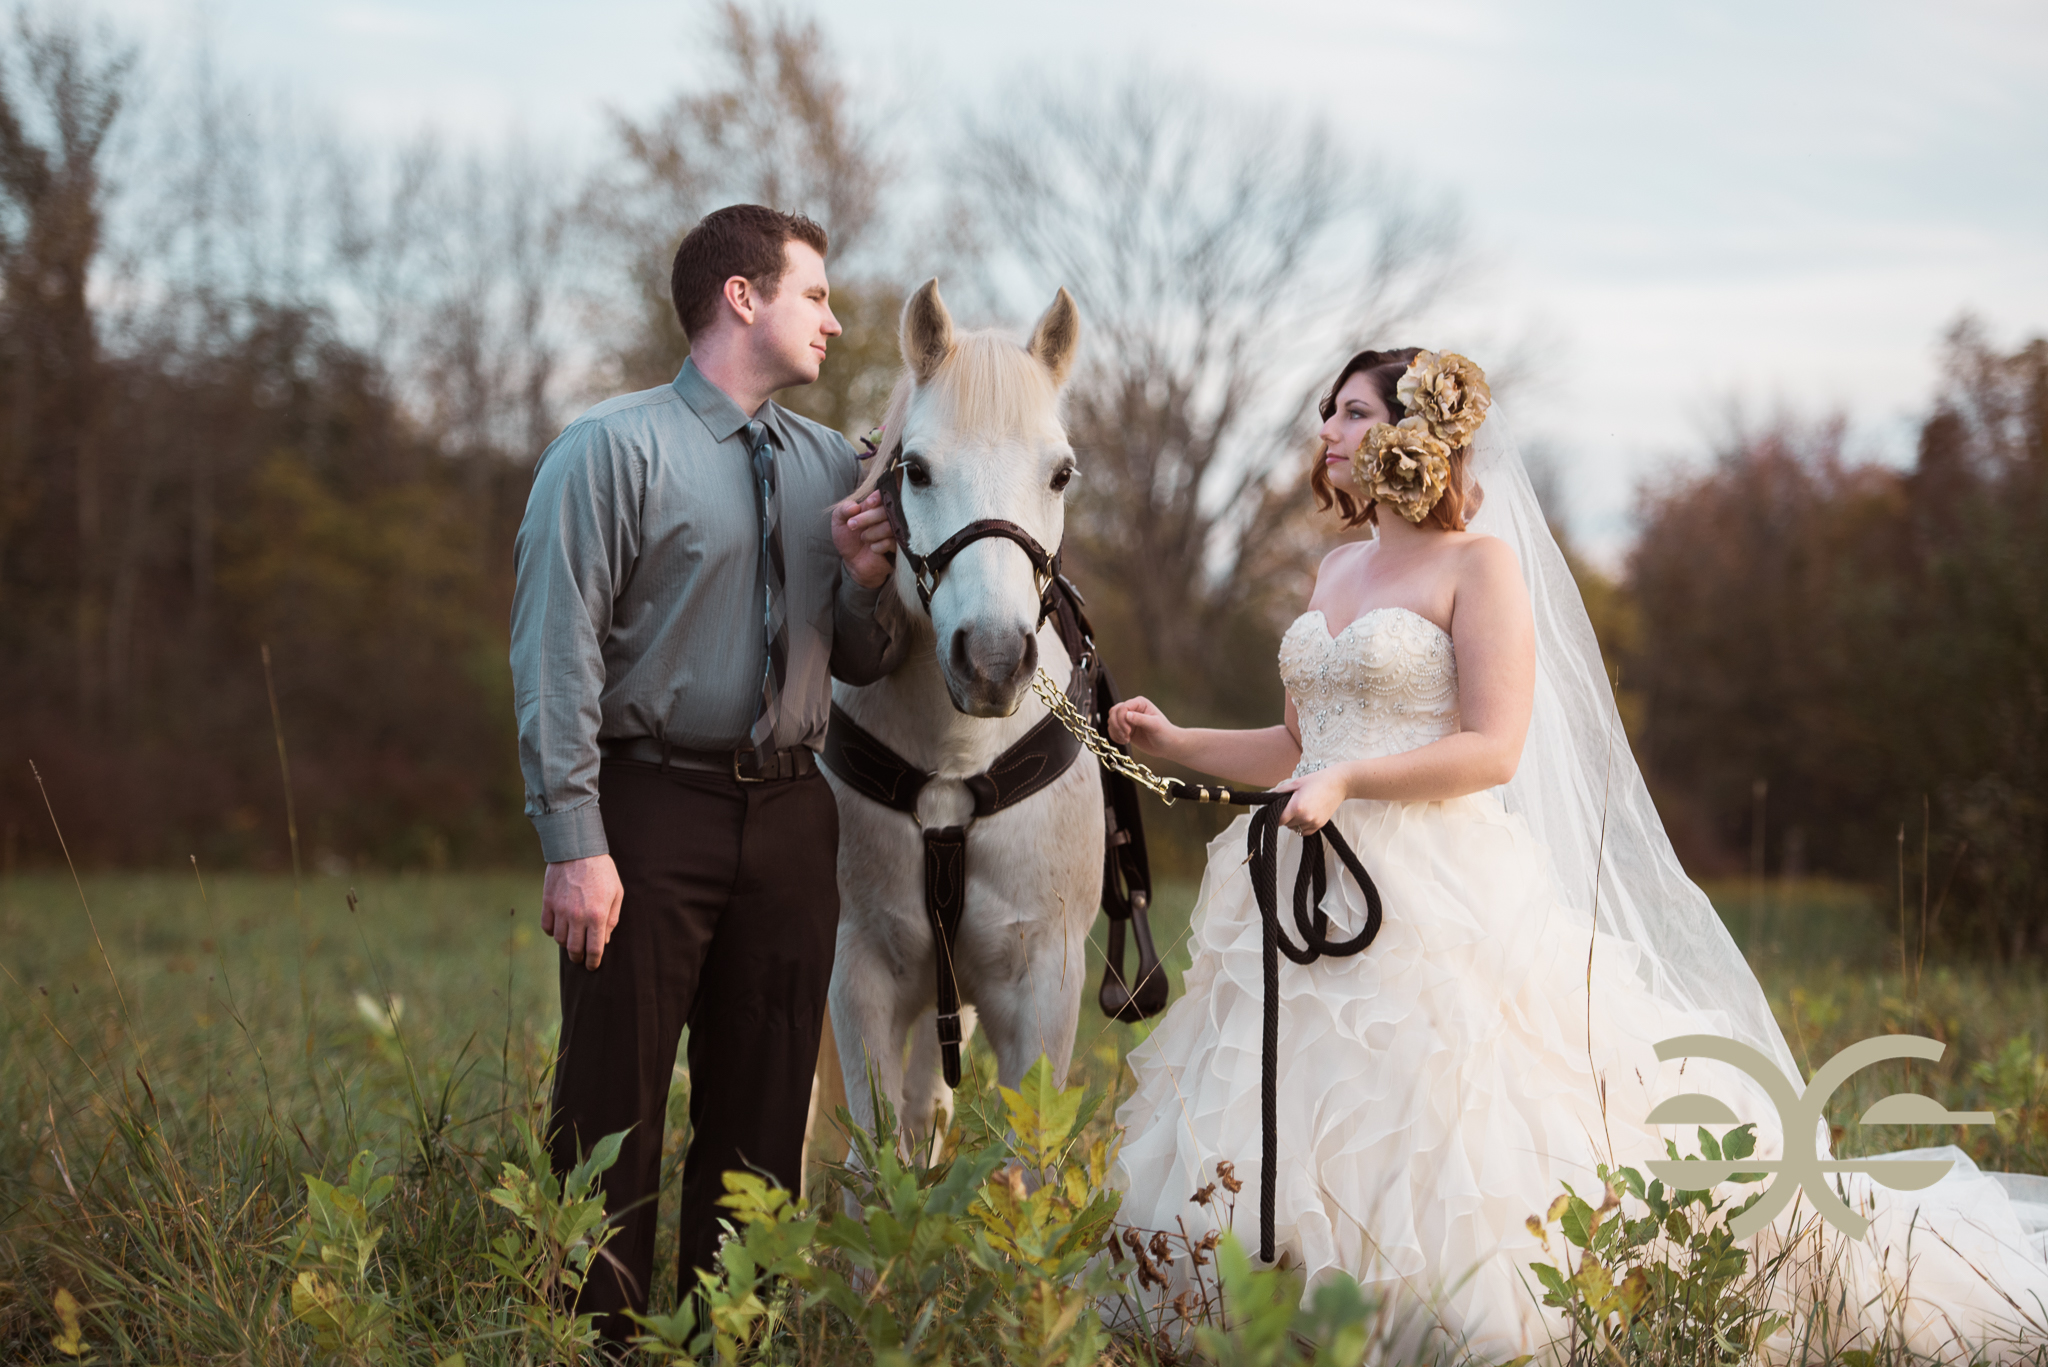 A bride and groom with their horse in Buffalo, NY